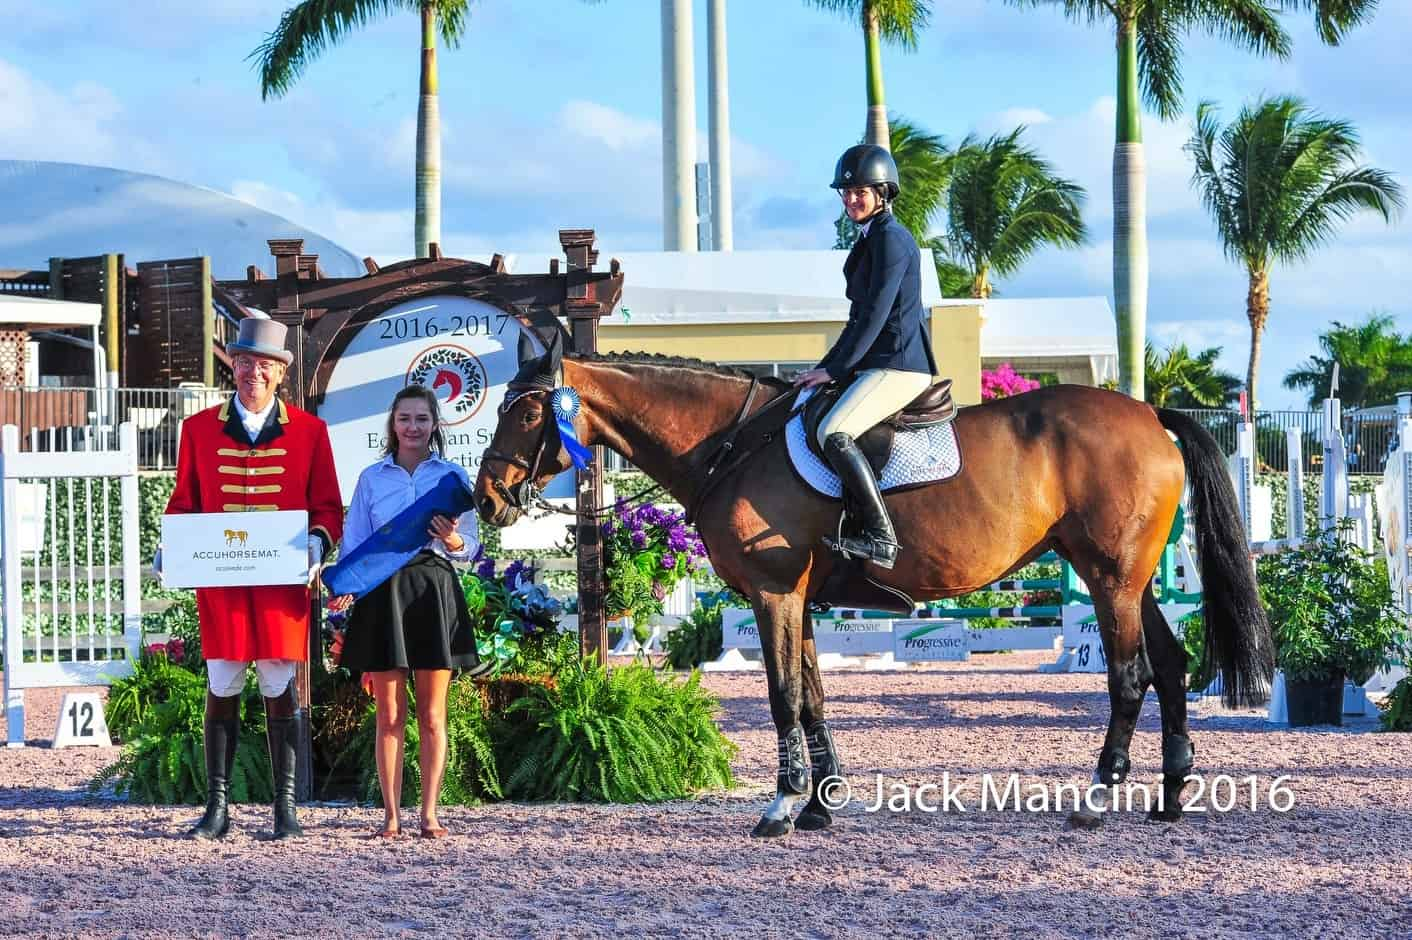 Lindsey Tomeu Wins Accuhorsemat Adult Jumper Class at Holiday & Horses Show in Wellington